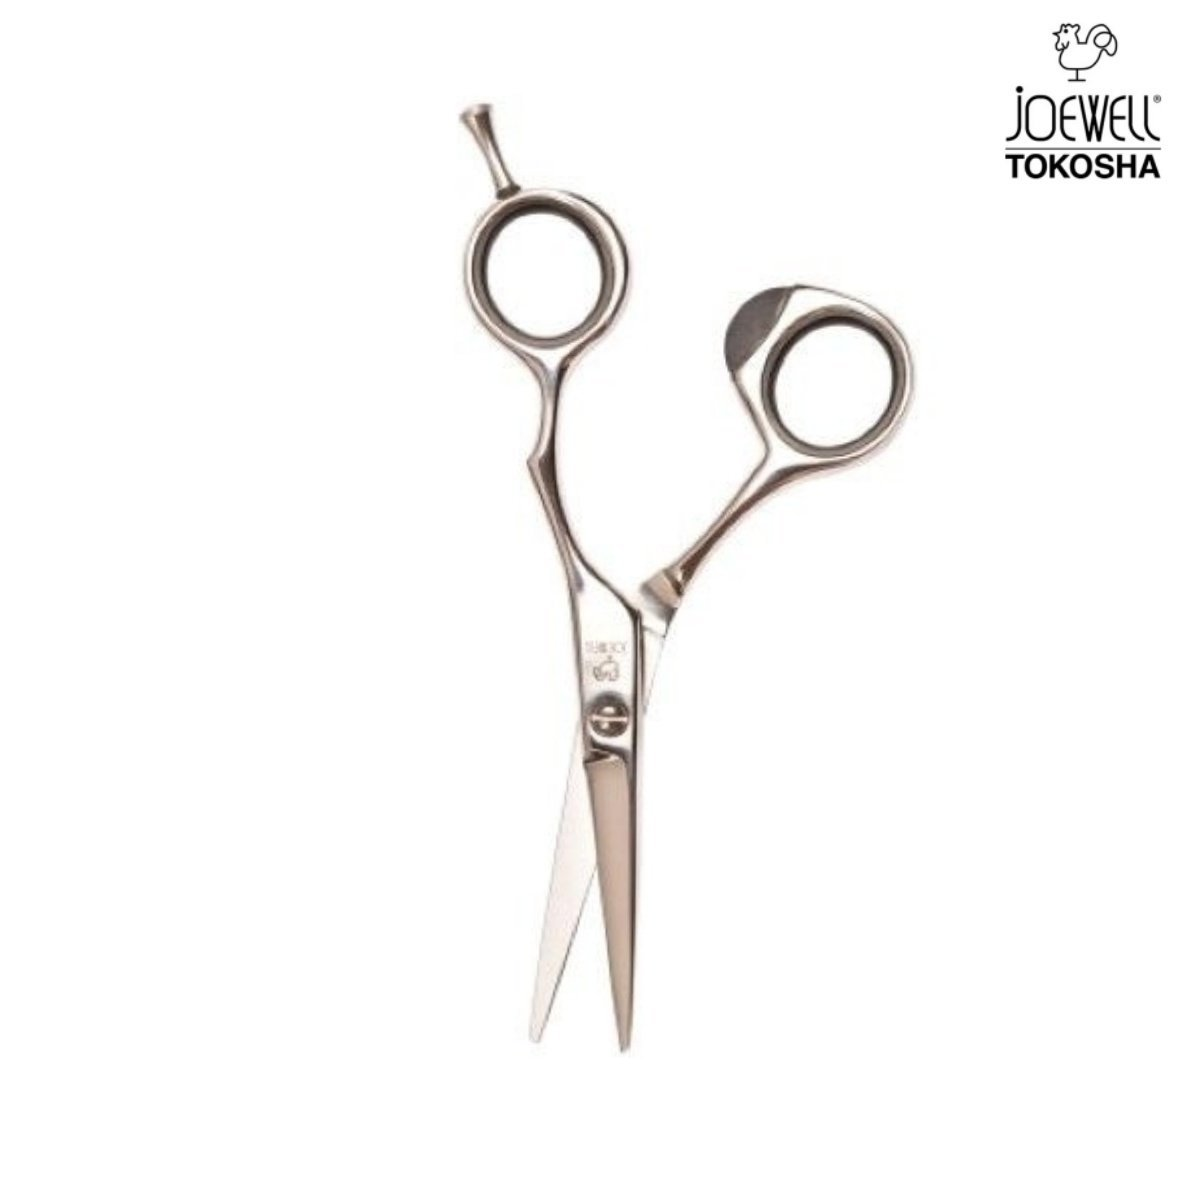 Joewell X Offset Hair Scissor - Japan Scissors